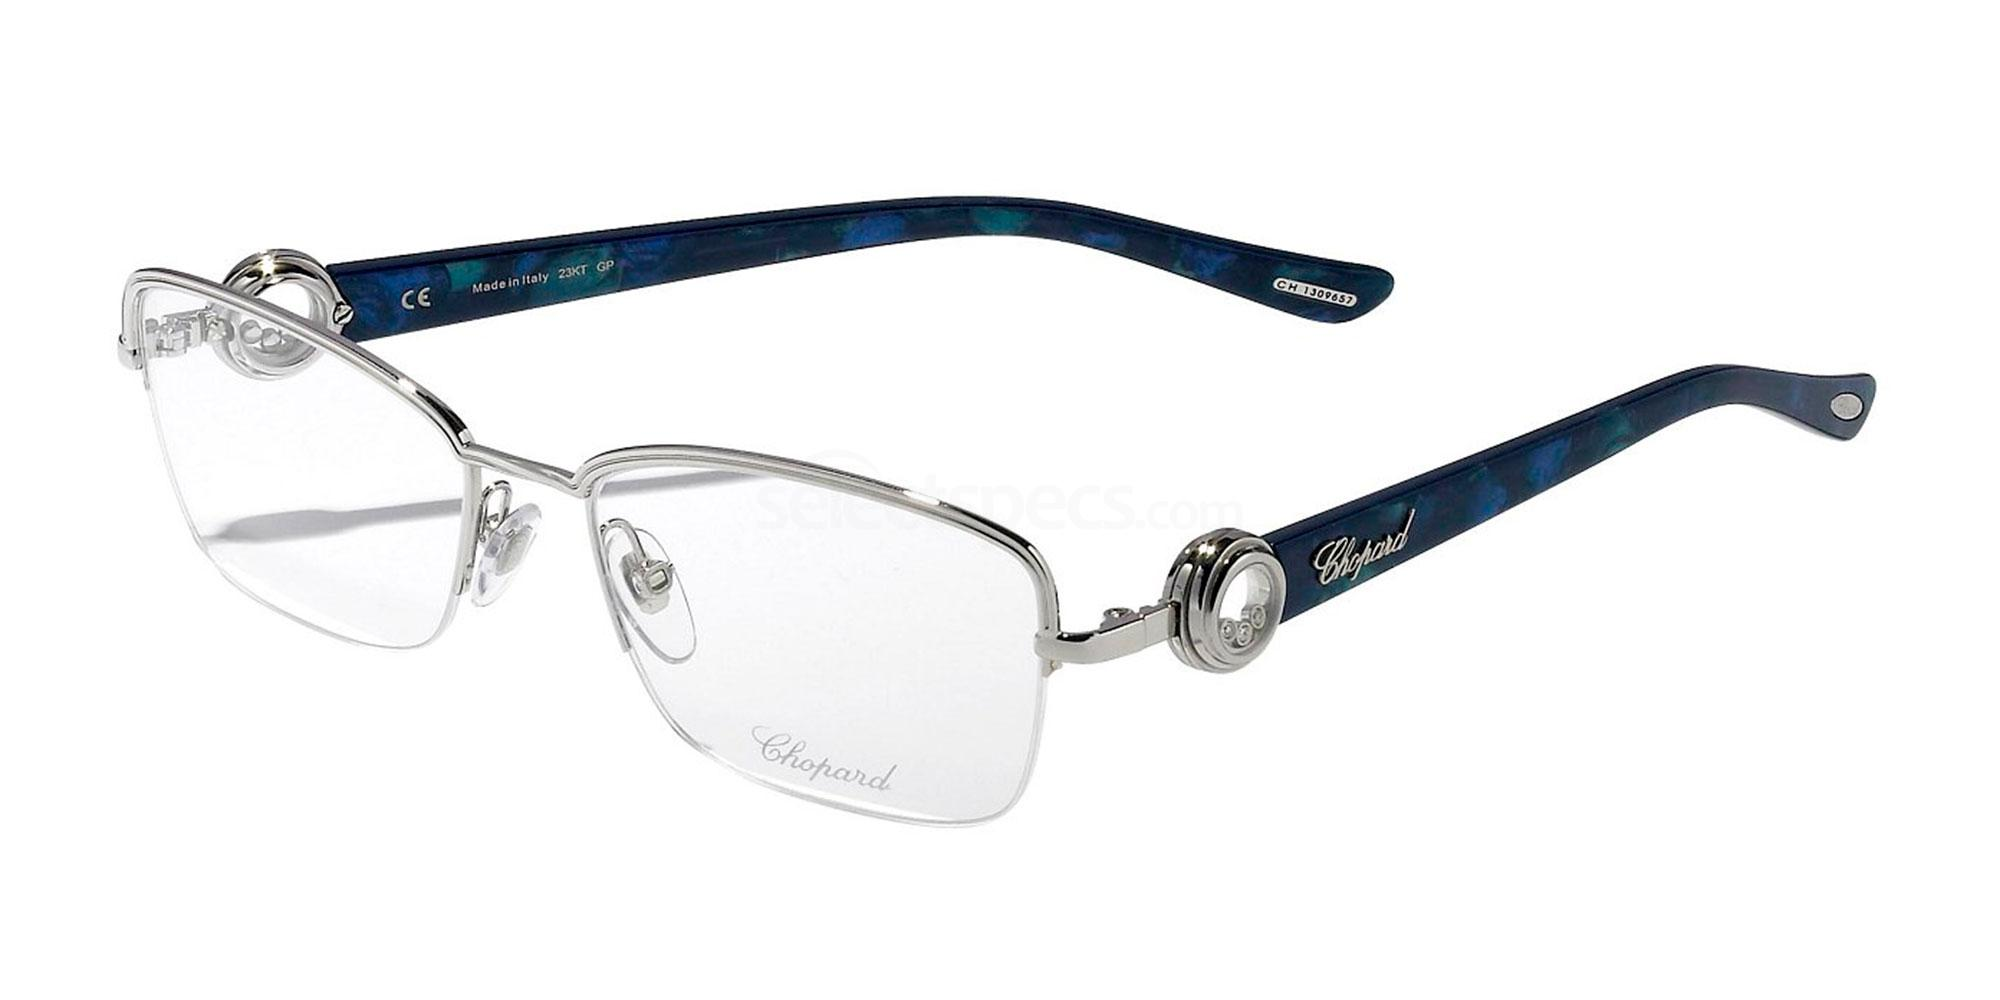 0579 VCHA37S Glasses, Chopard